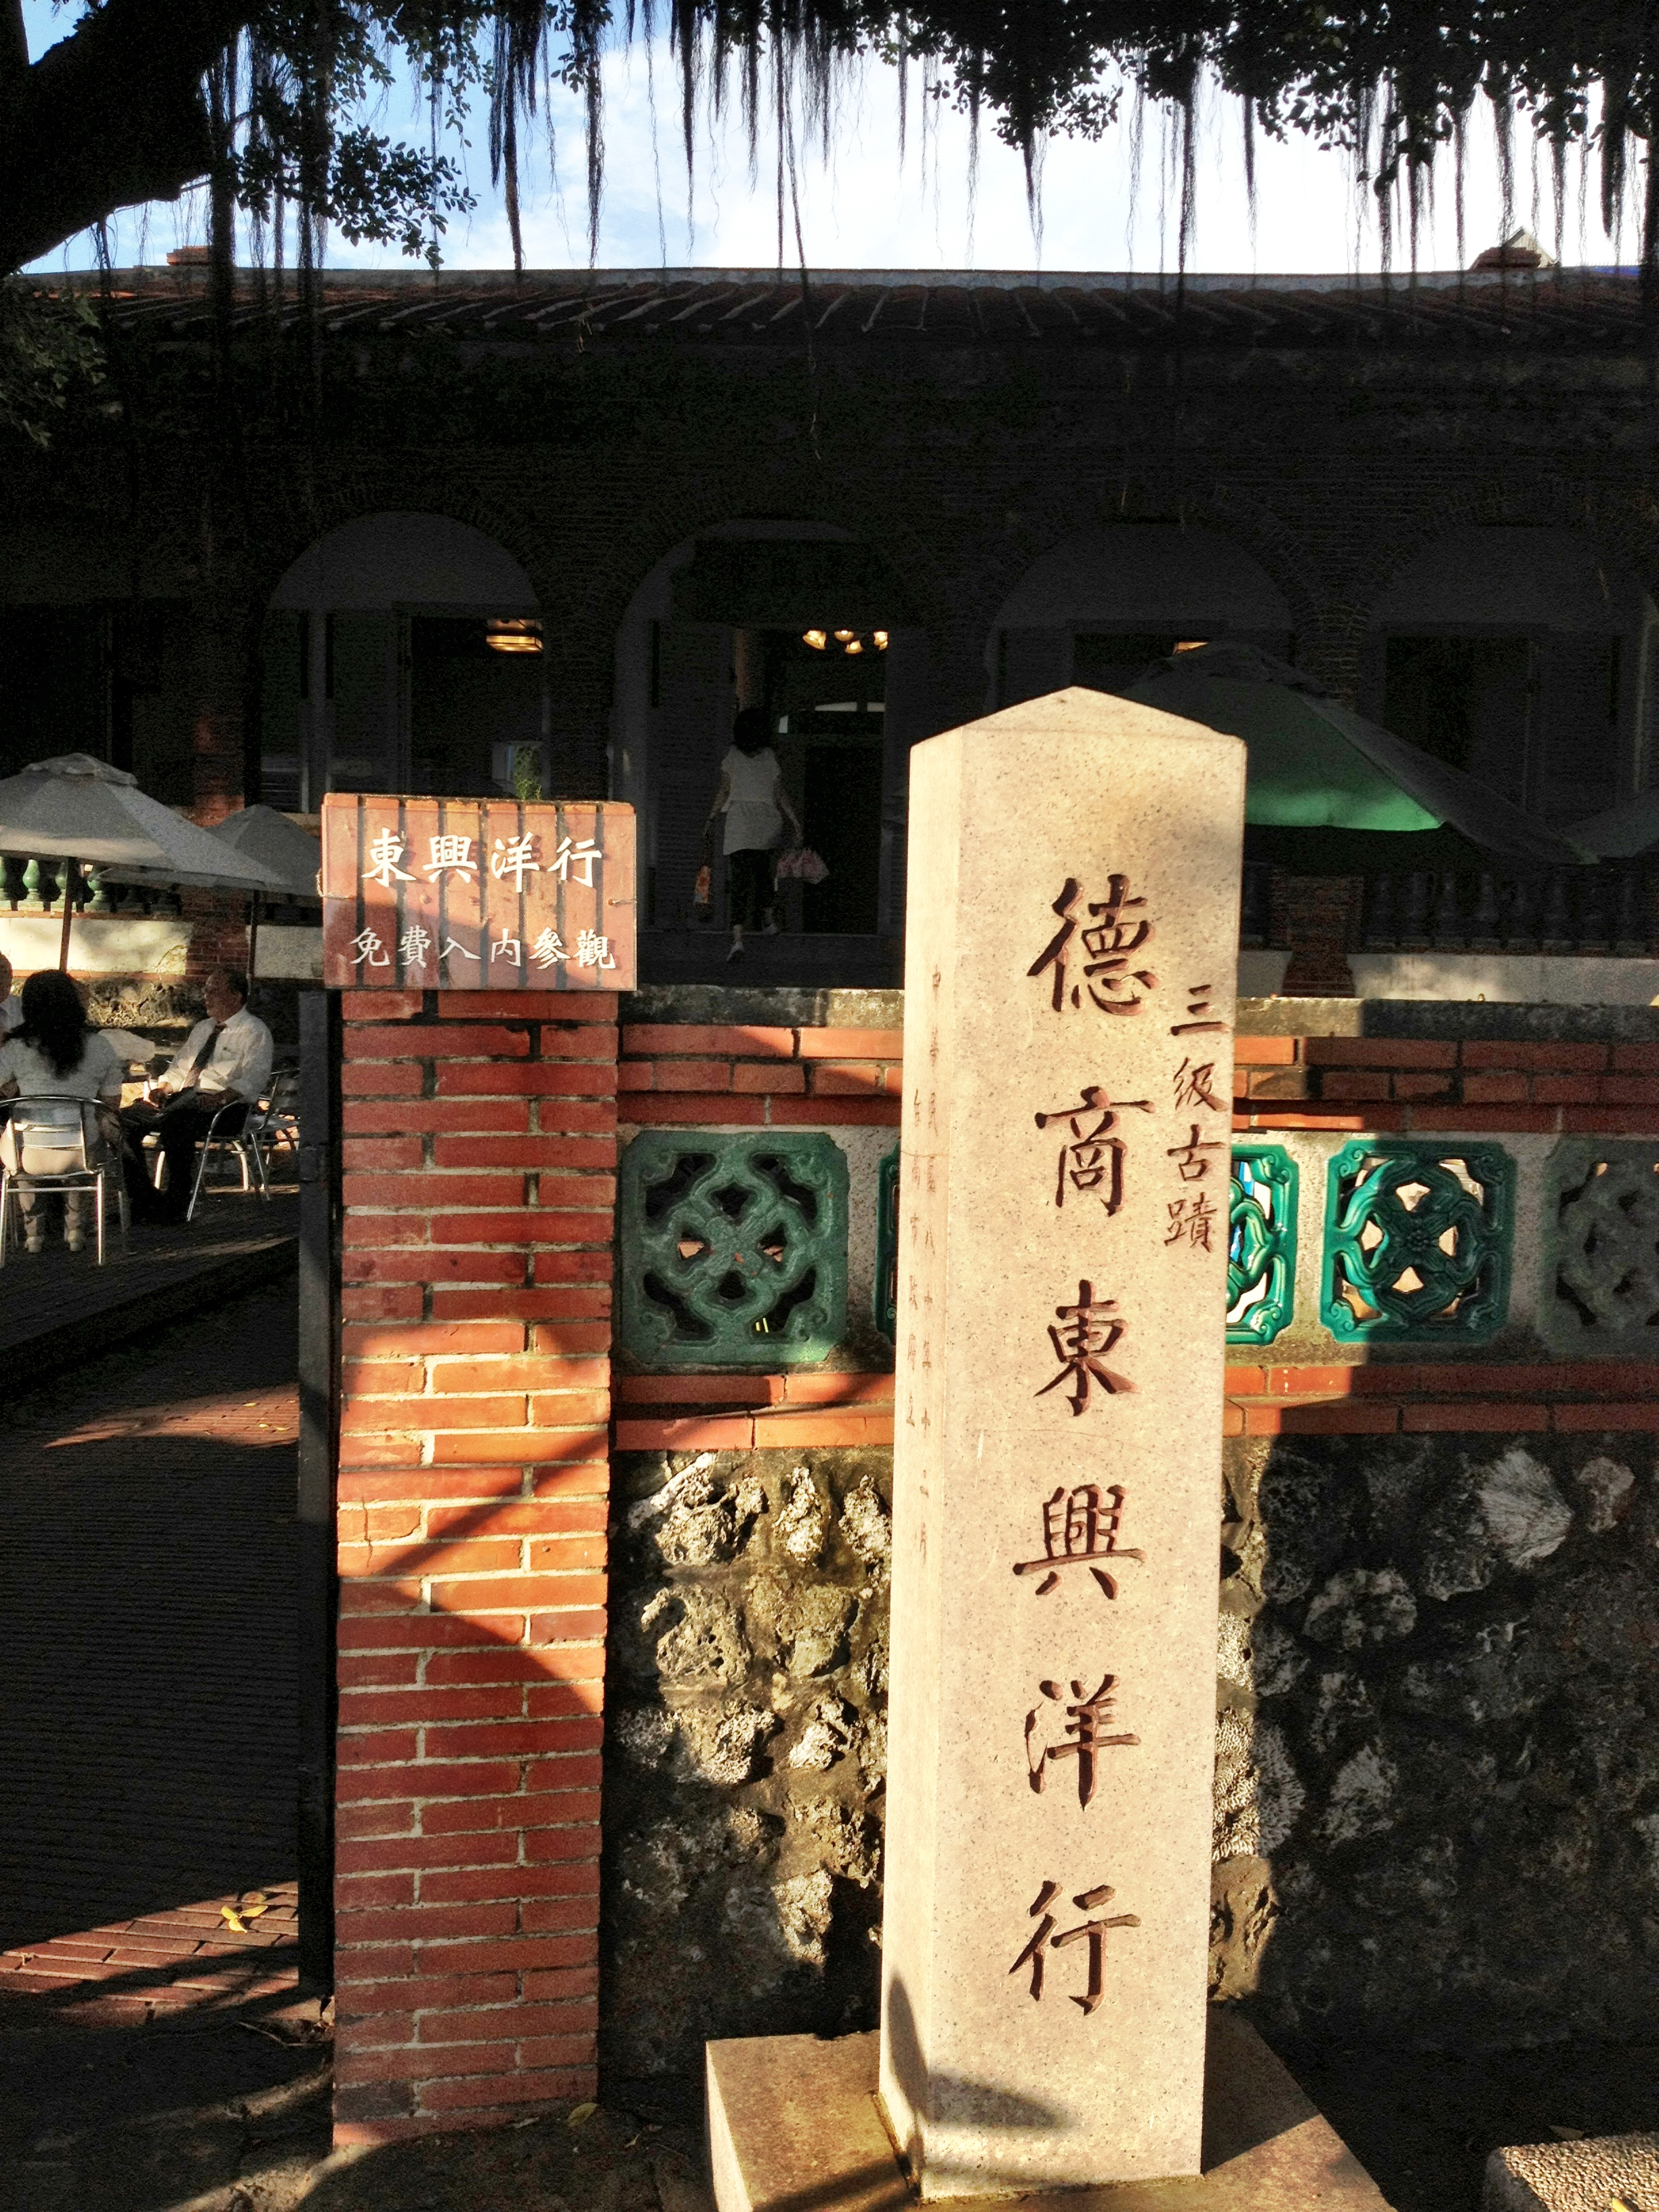 臺灣臺南德商東興洋行 Julius Mannich & CO. in Tainan, TAIWAN.jpg